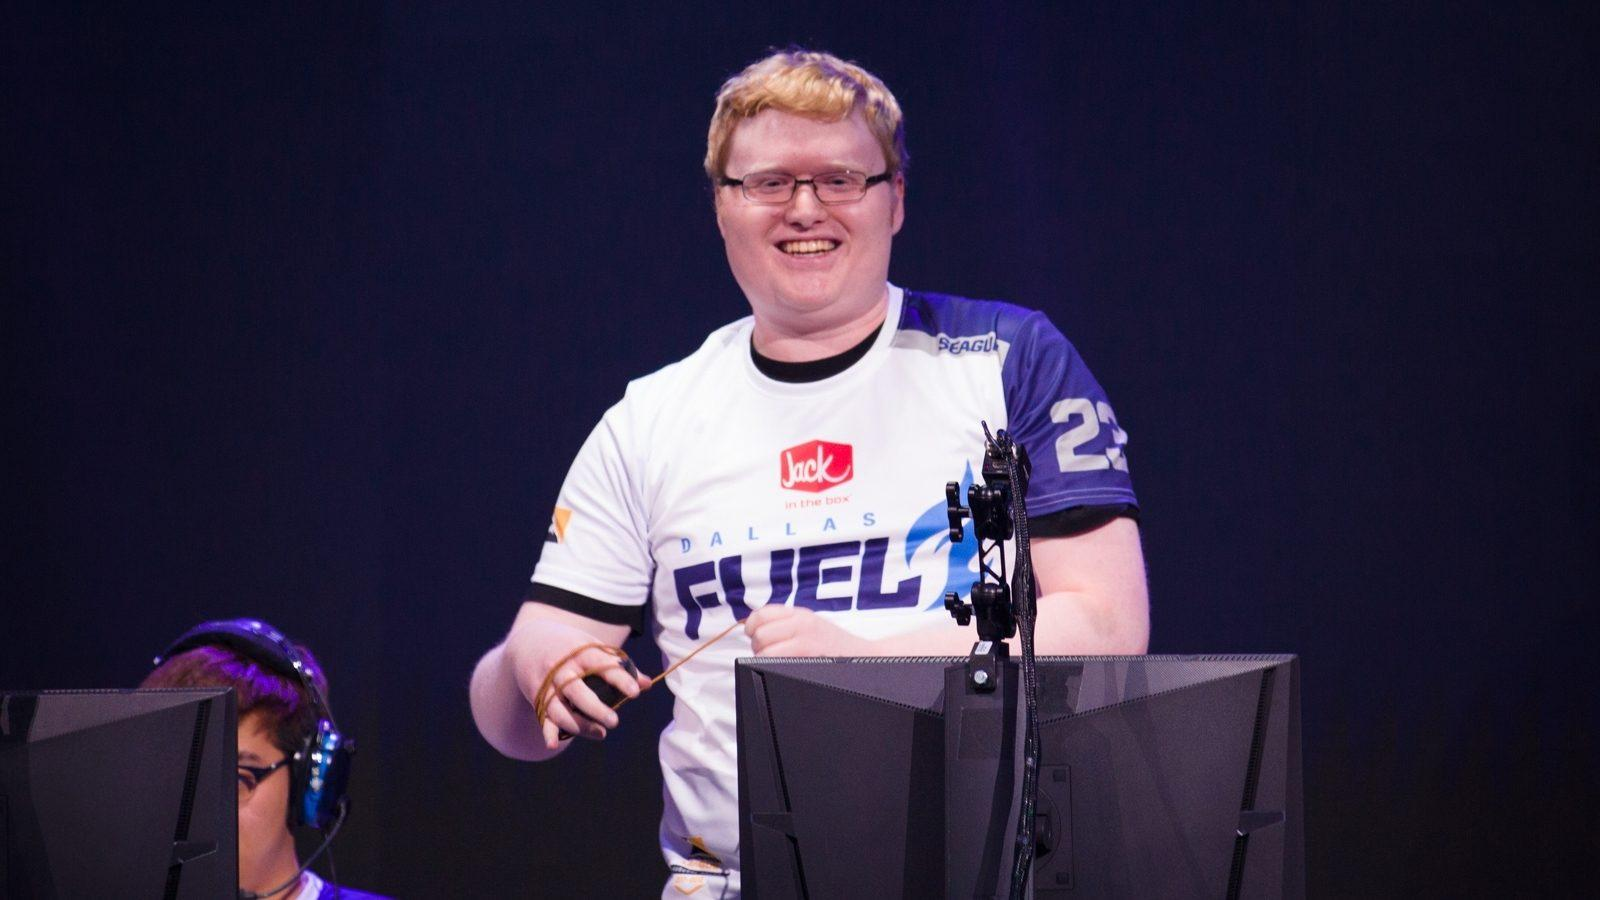 Seagull smiles after finishing a match in the Overwatch League with Dallas Fuel.